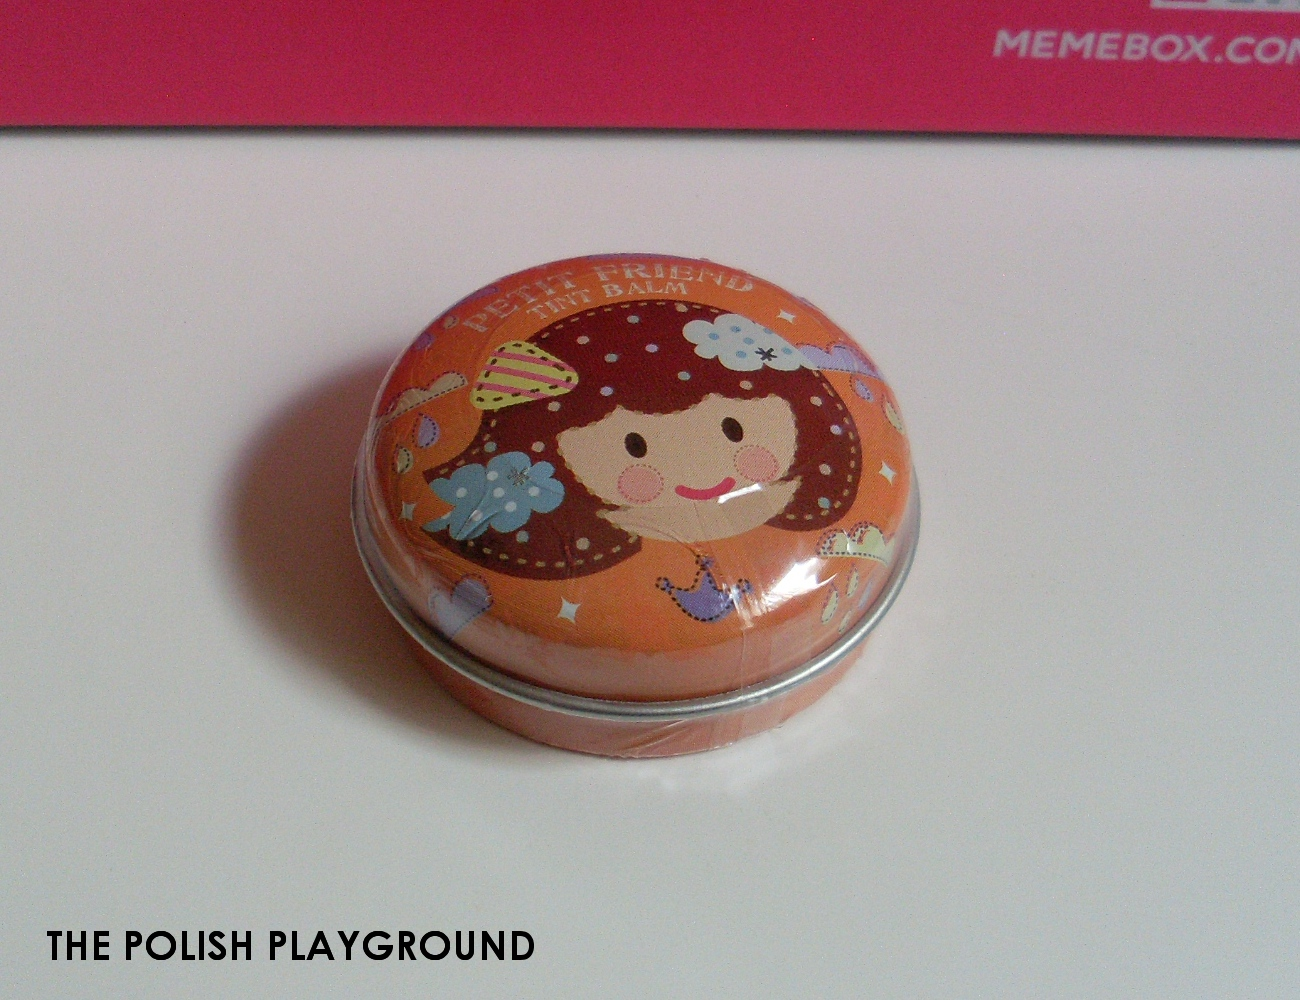 Memebox Superbox #49 All About Lips Unboxing - Shara Shara Petit Friend Tint Balm OR01 Crown Orange